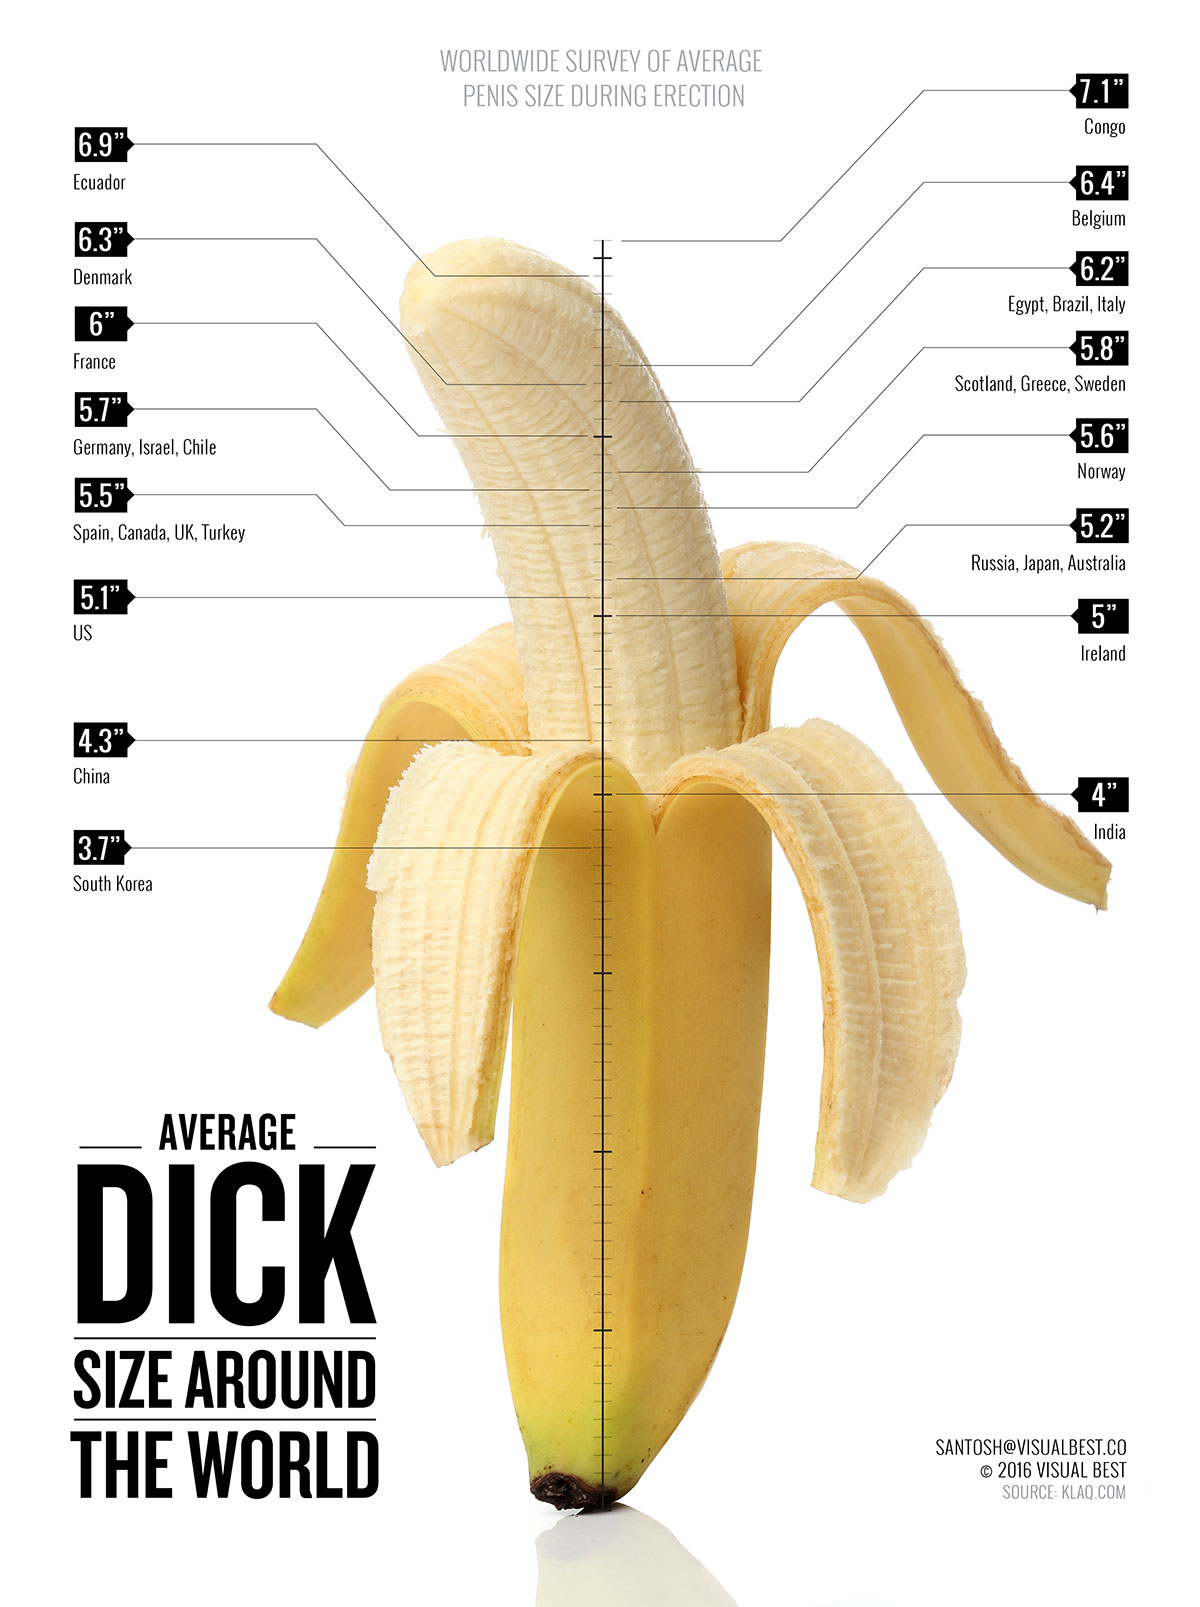 Just How Big Is a Normal Penis? WebMD